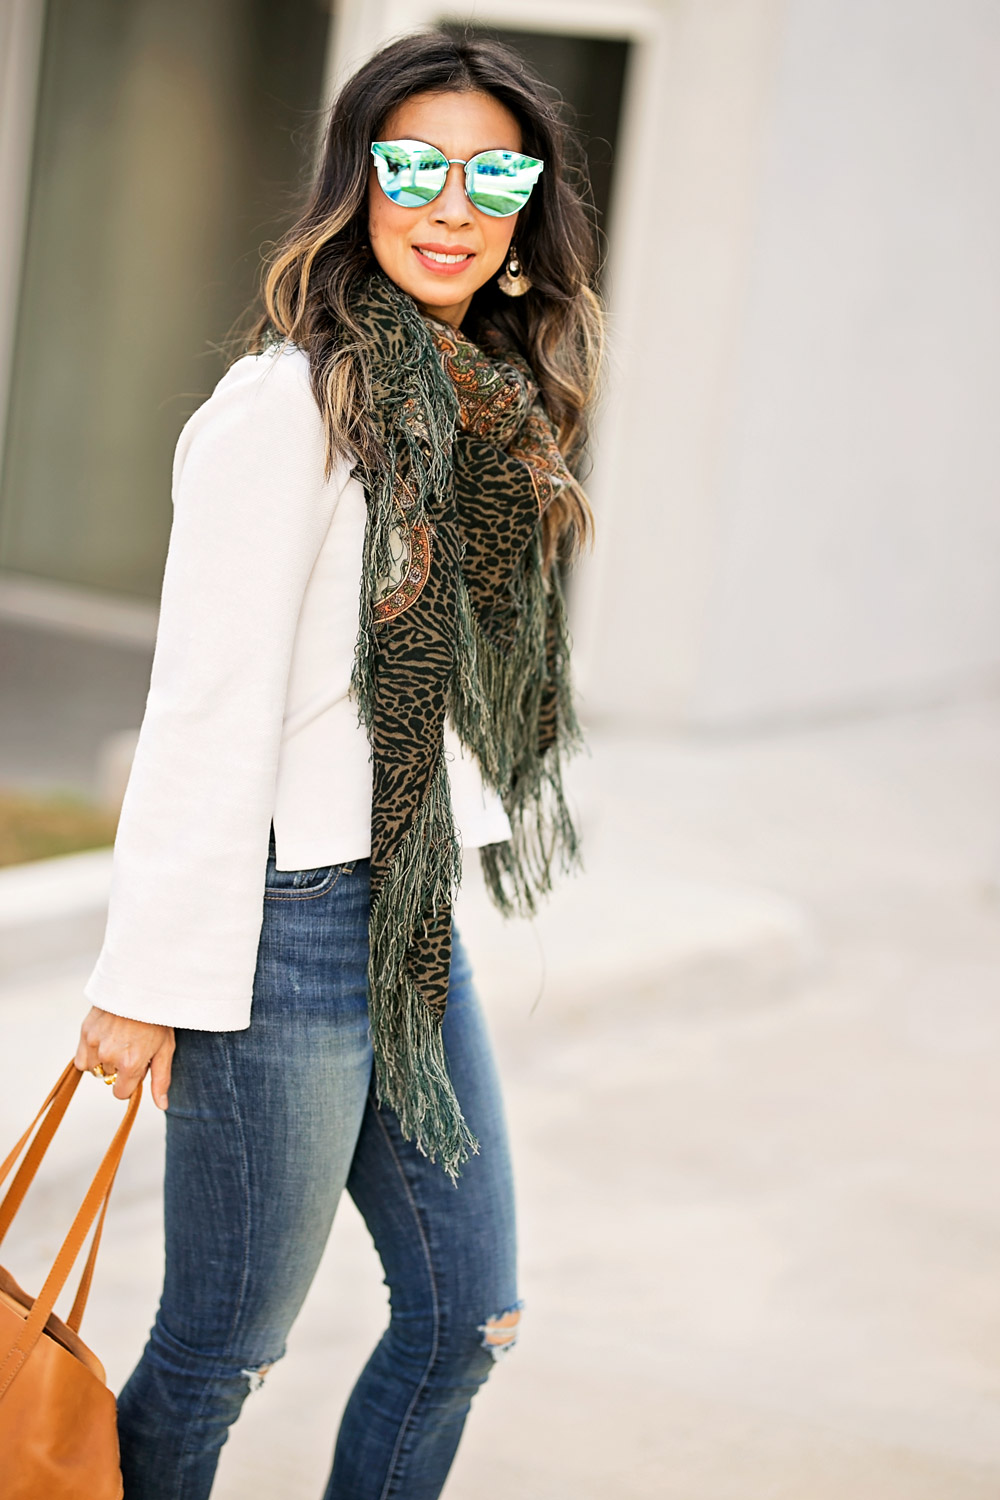 ABLE bell sleeve pullover high rise jeans chelsea boot abera crossbody tote green fringe scarf